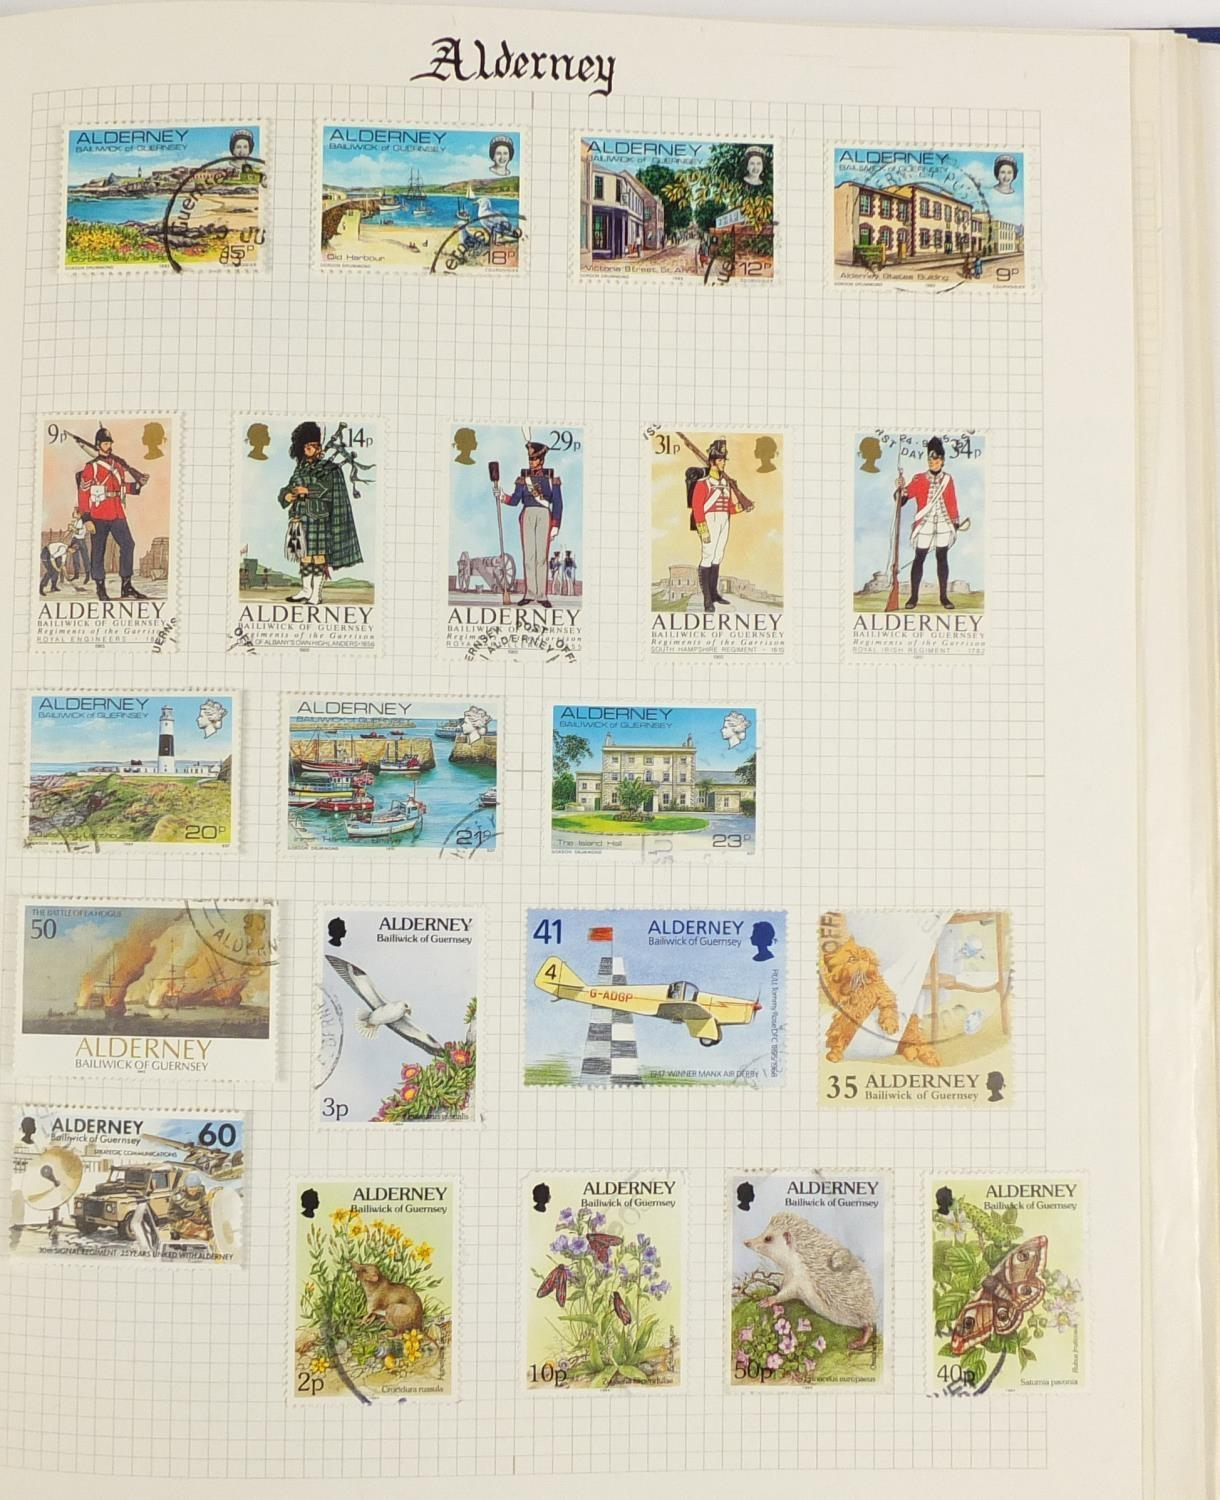 Lot 1045 - Isle of Man stamps including some mint arranged in an album : For Further Condition Reports Please